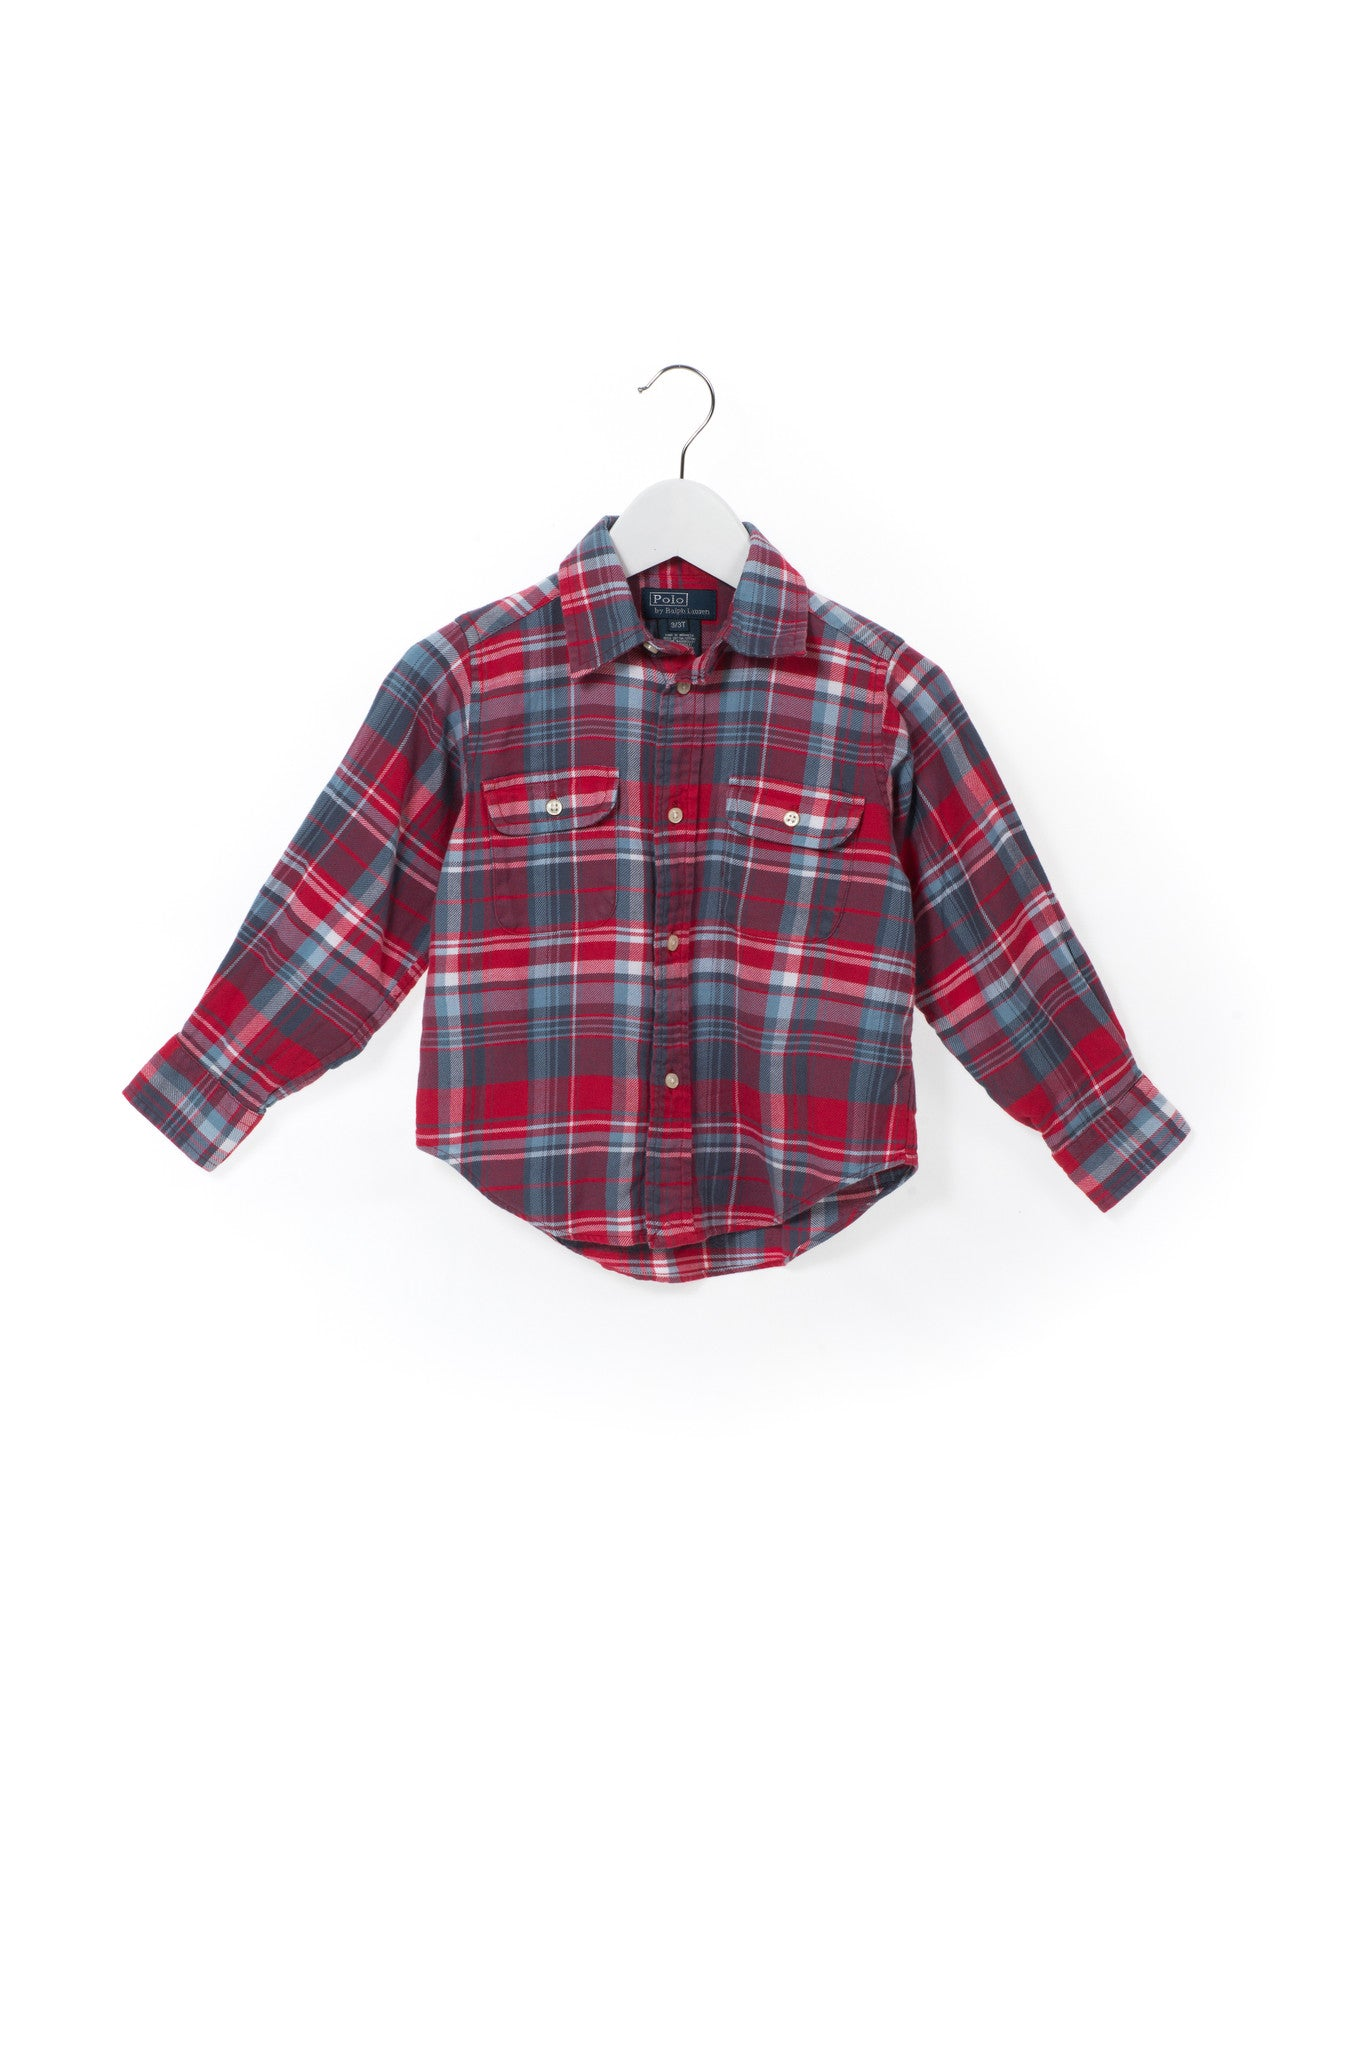 10001141 Polo Ralph Lauren Kids~Shirt 3T at Retykle